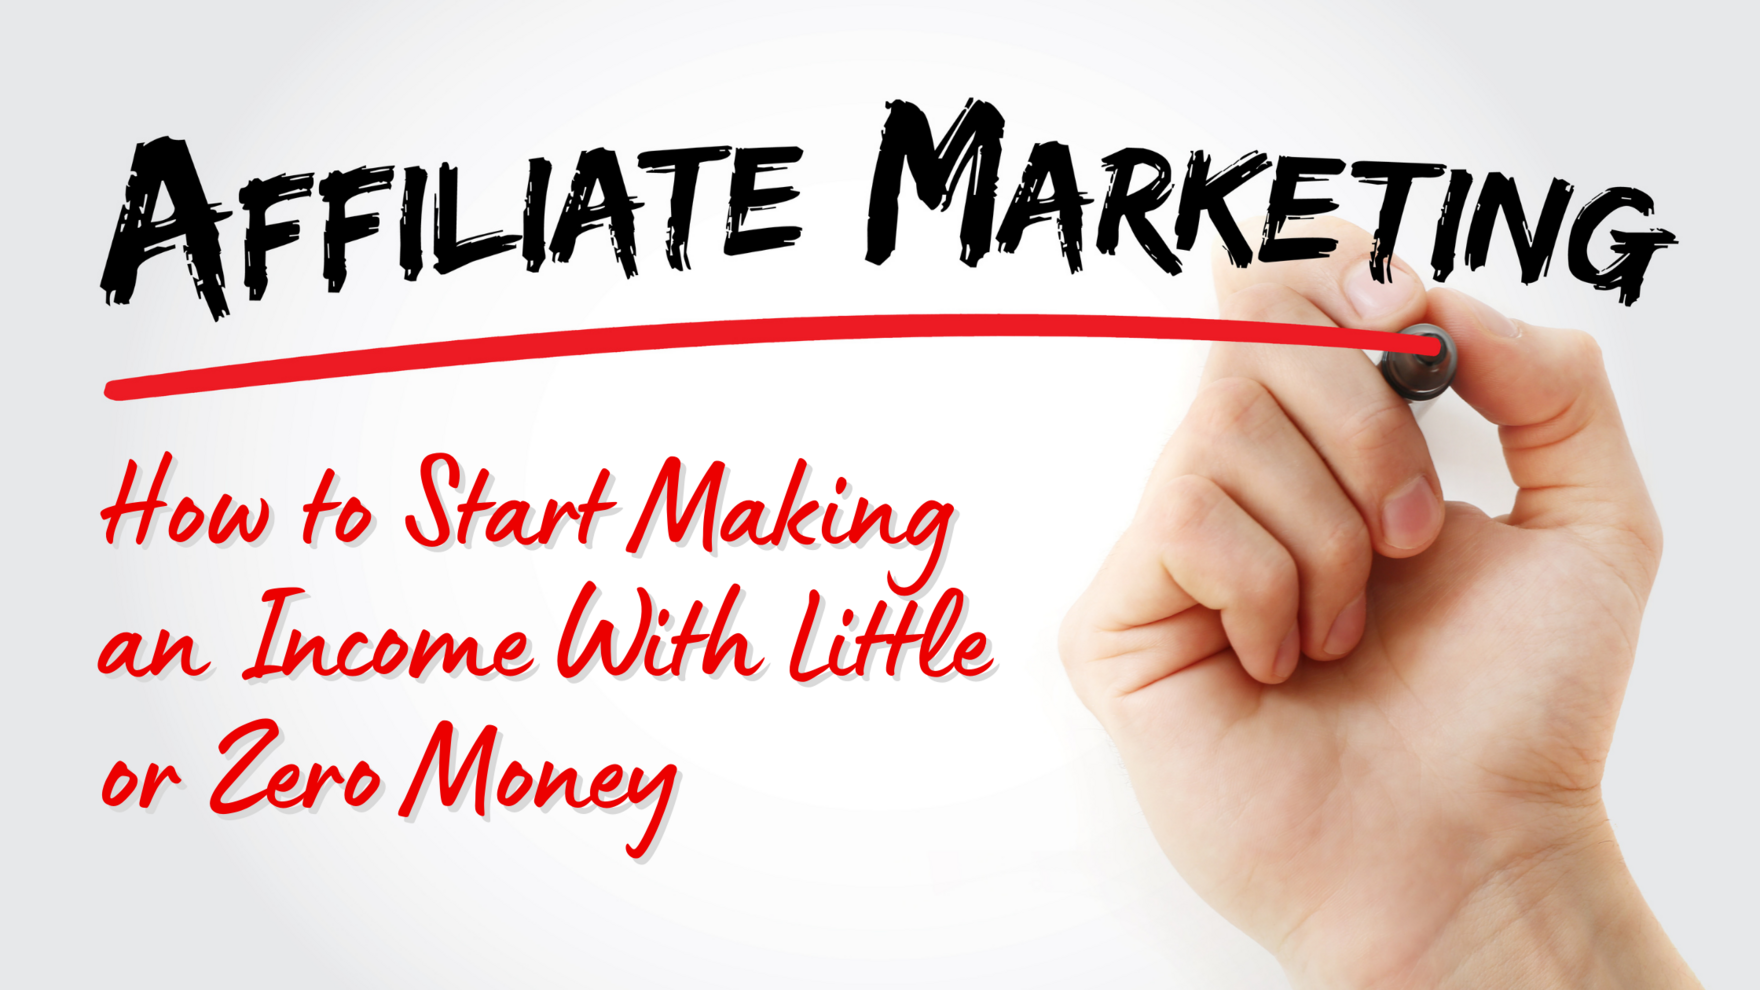 How to Start Making an Income With Little or Zero Money